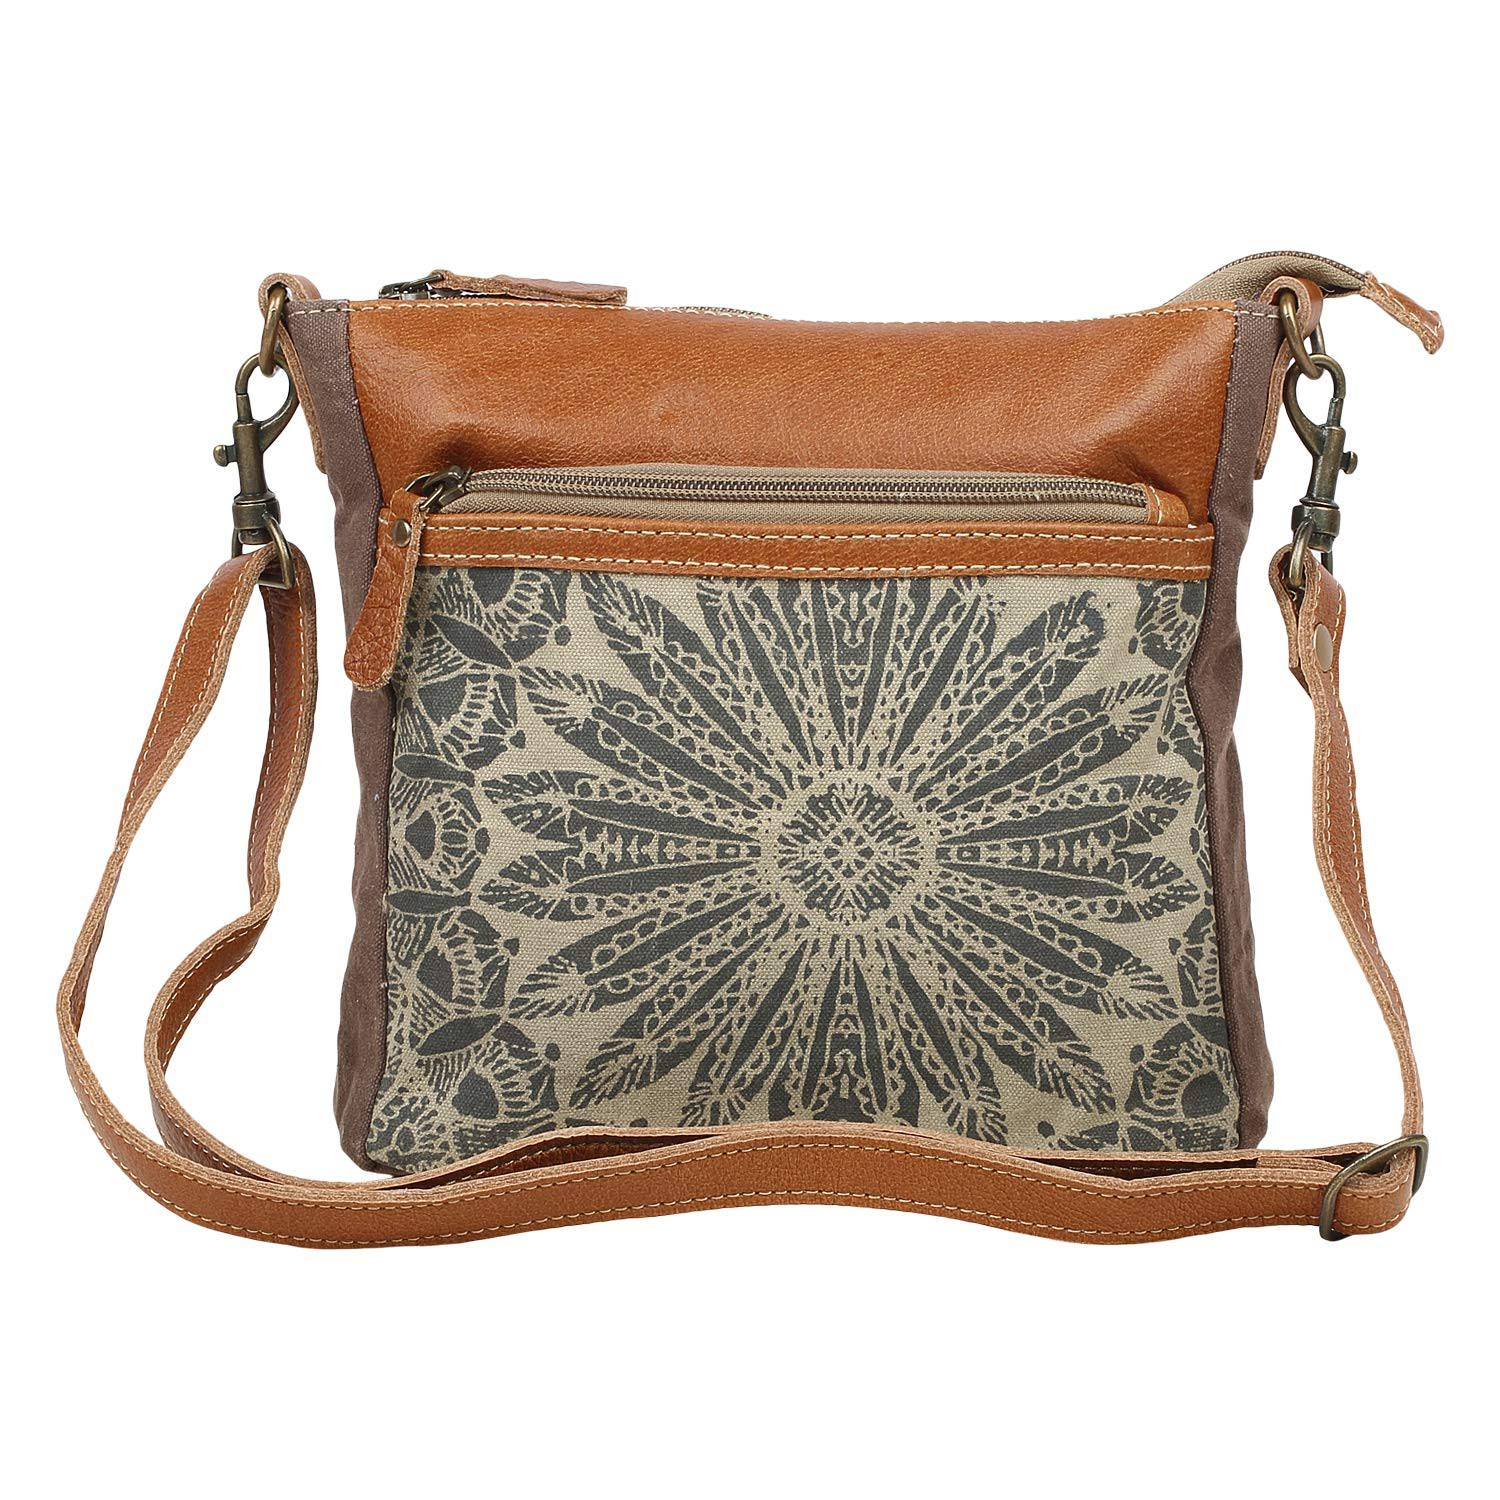 Myra Bag Dizzy Circle Upcycled Canvas & Leather Small Crossbody Bag S-1556